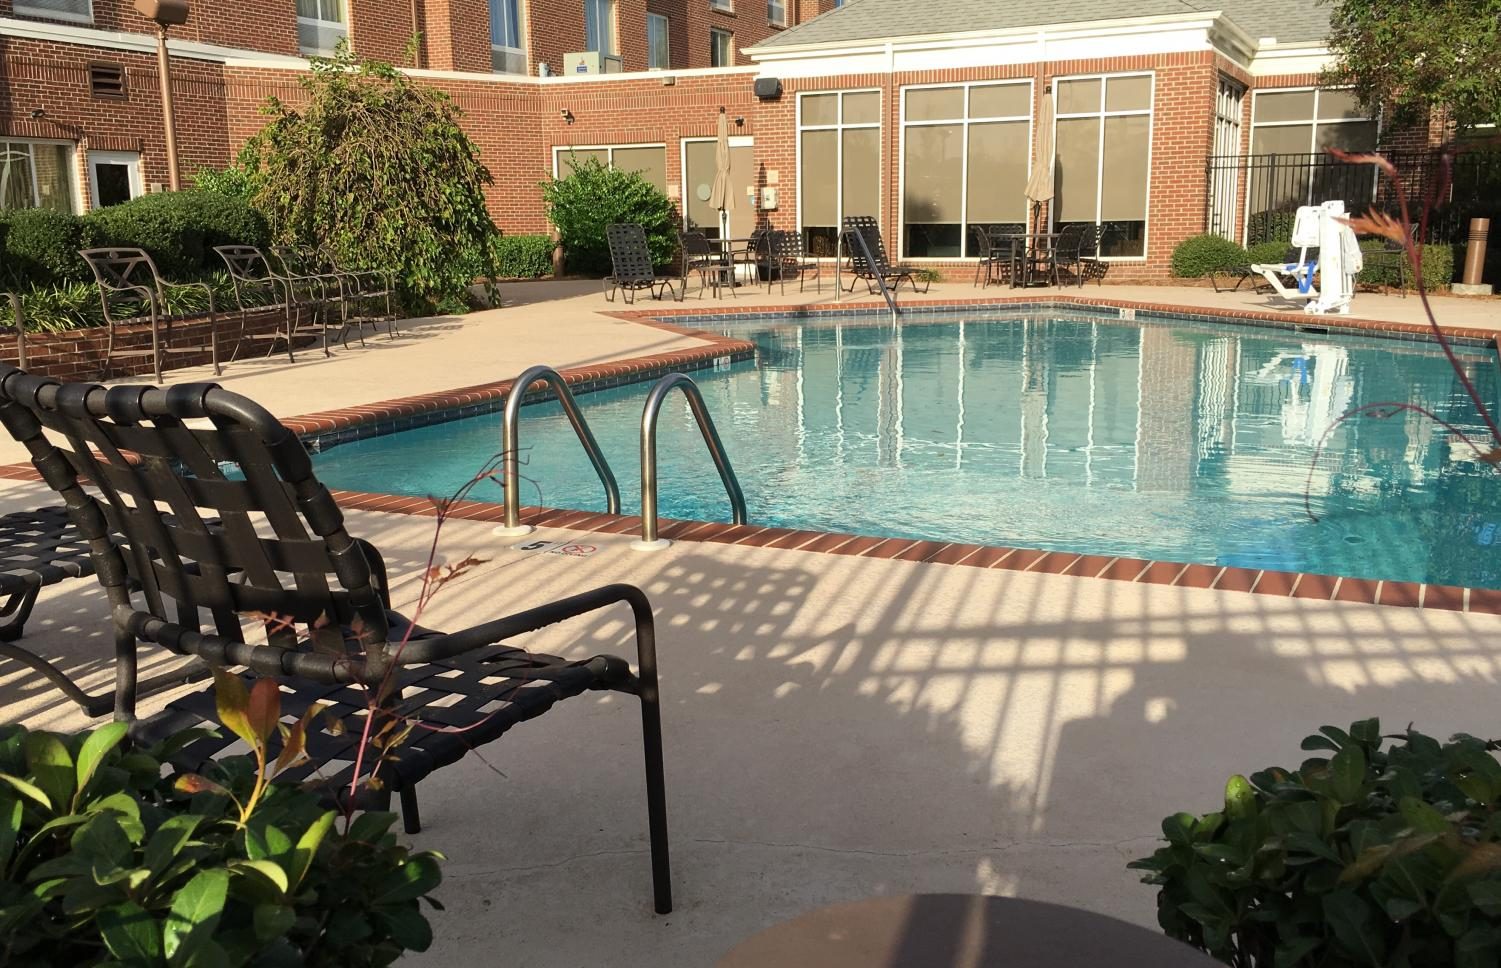 The Macon-Bibb County Health Department is offering a free course Friday for those who care for pool, spa and recreational water facilities to learn how to keep the water safe.